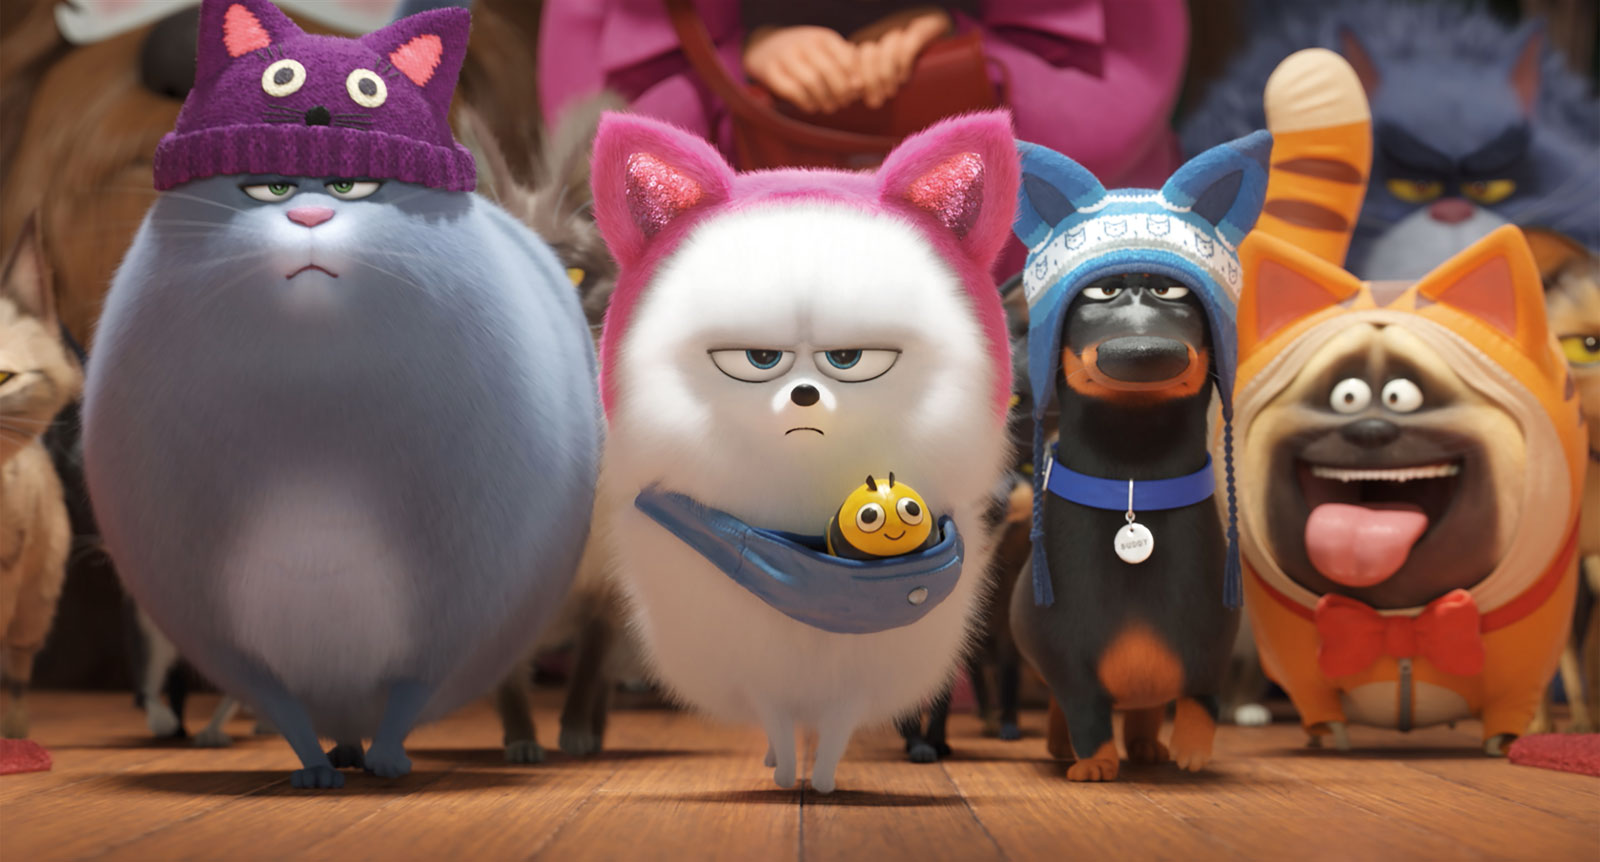 slop 2 - Secret Life of Pets Debuts Woefully, Blockbuster Countdown Begins For Bling Lagosians +Top 5 Box Office.